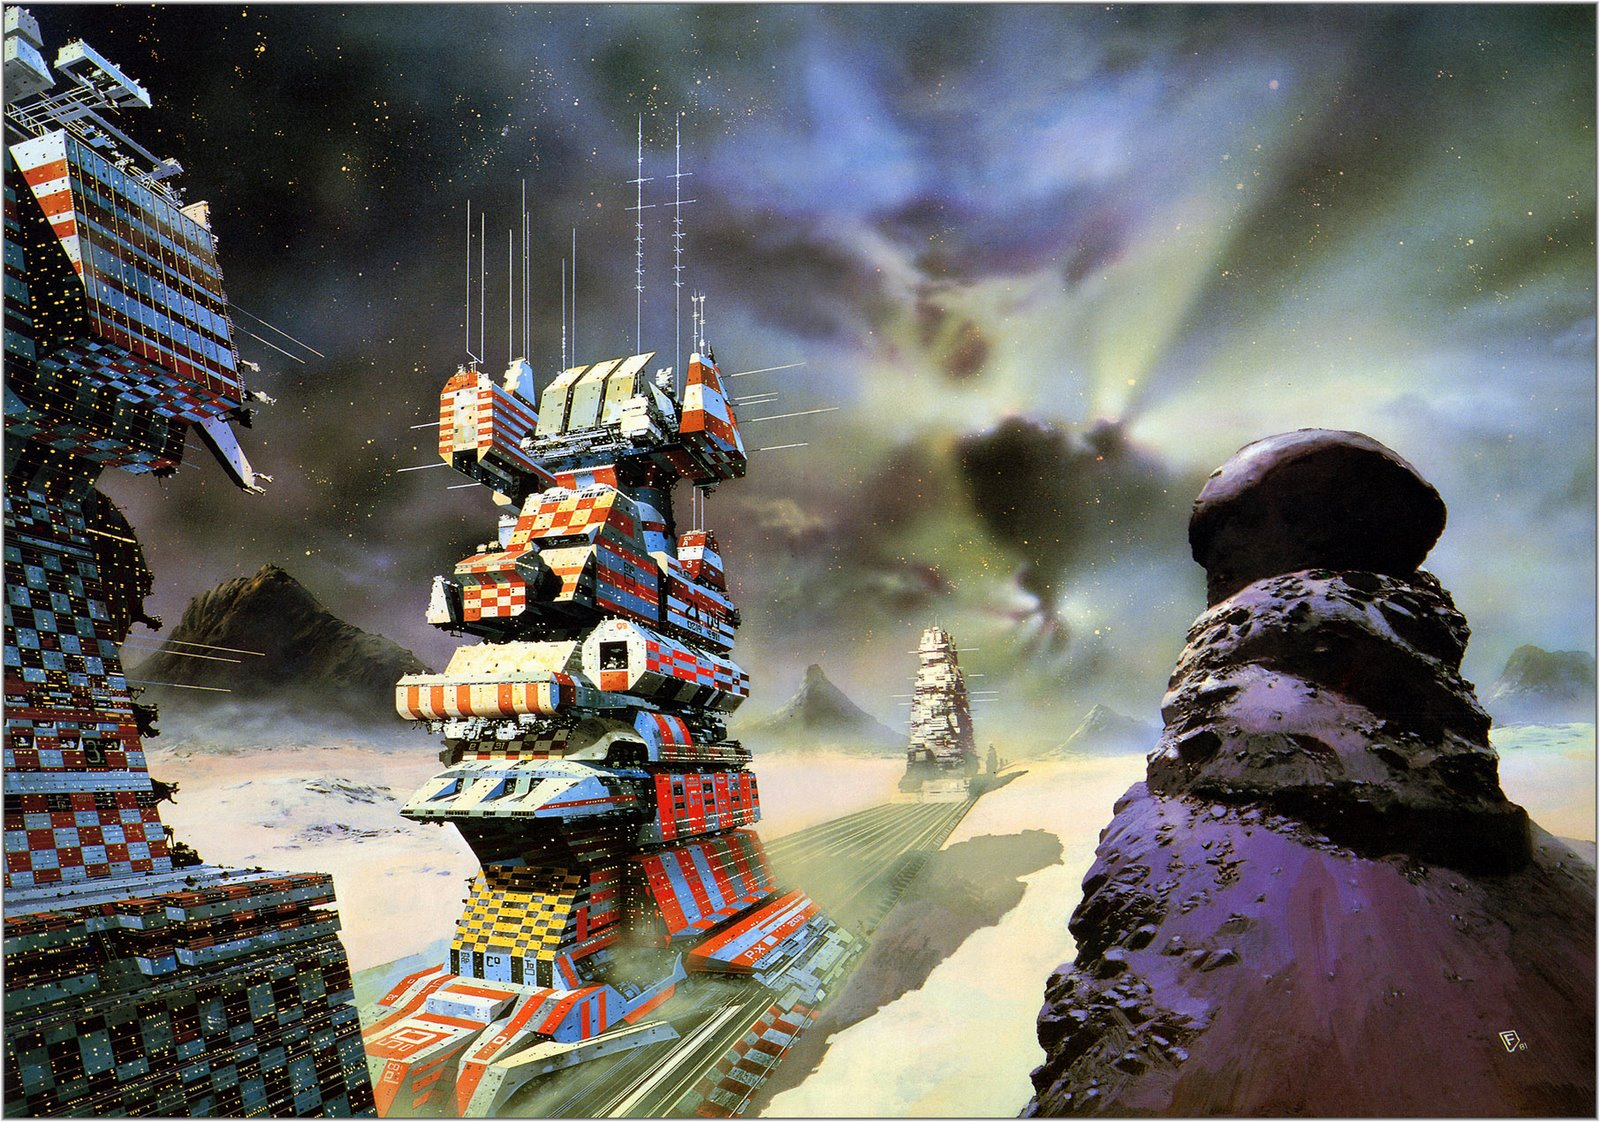 Copyright by Chris Foss